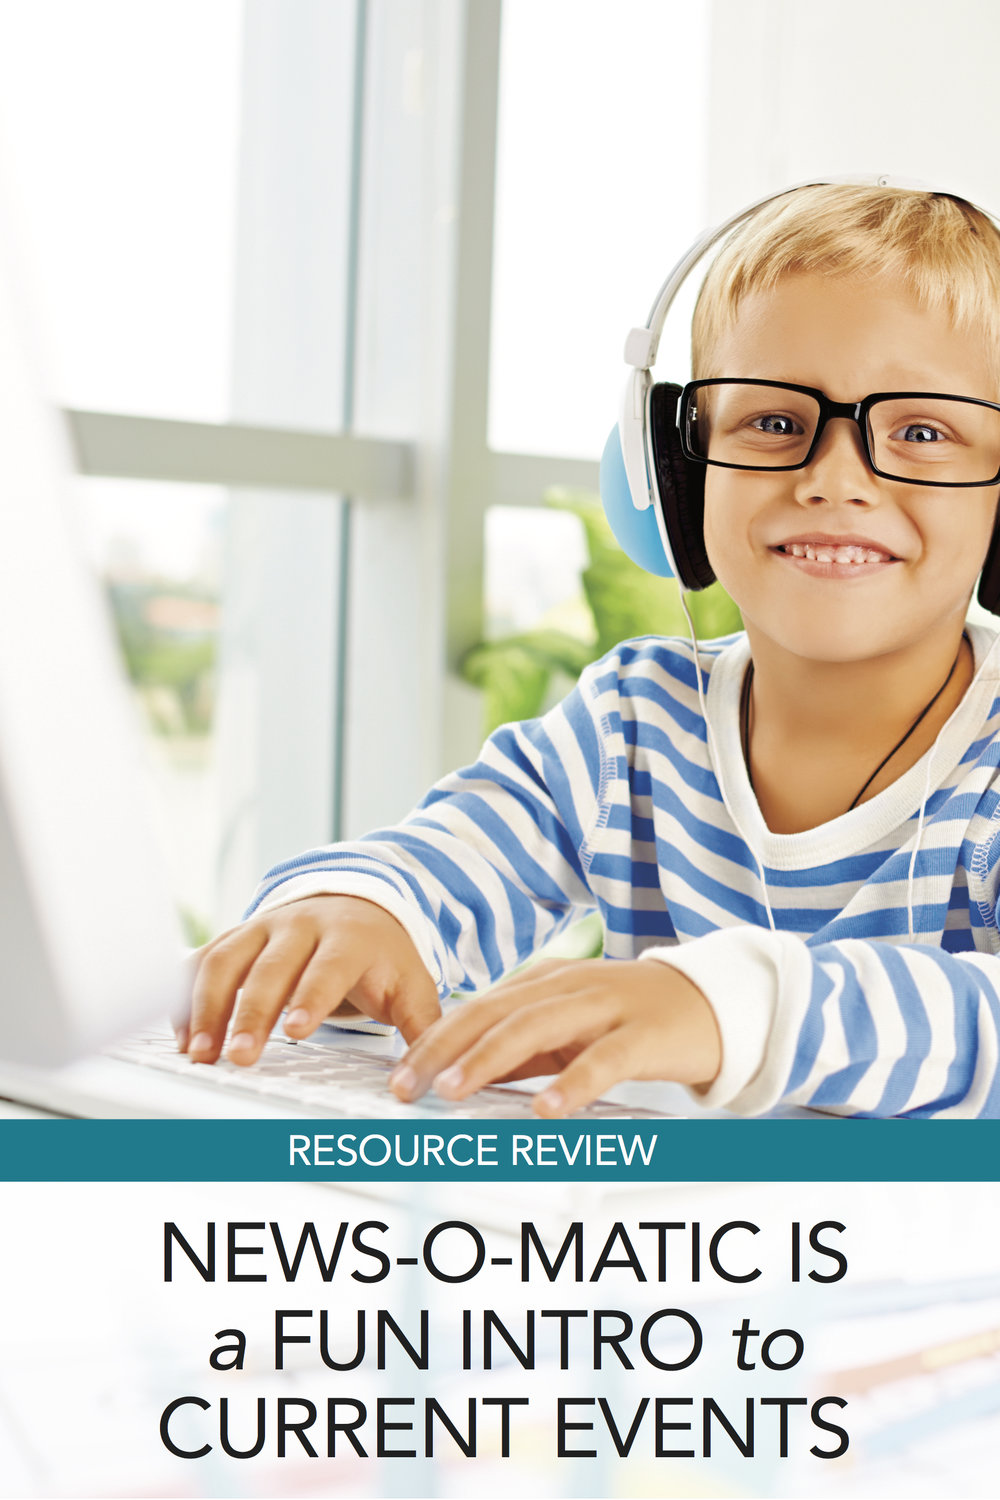 Resource Review: News-O-Matic Is a Kid-Friendly Introduction to Current Events